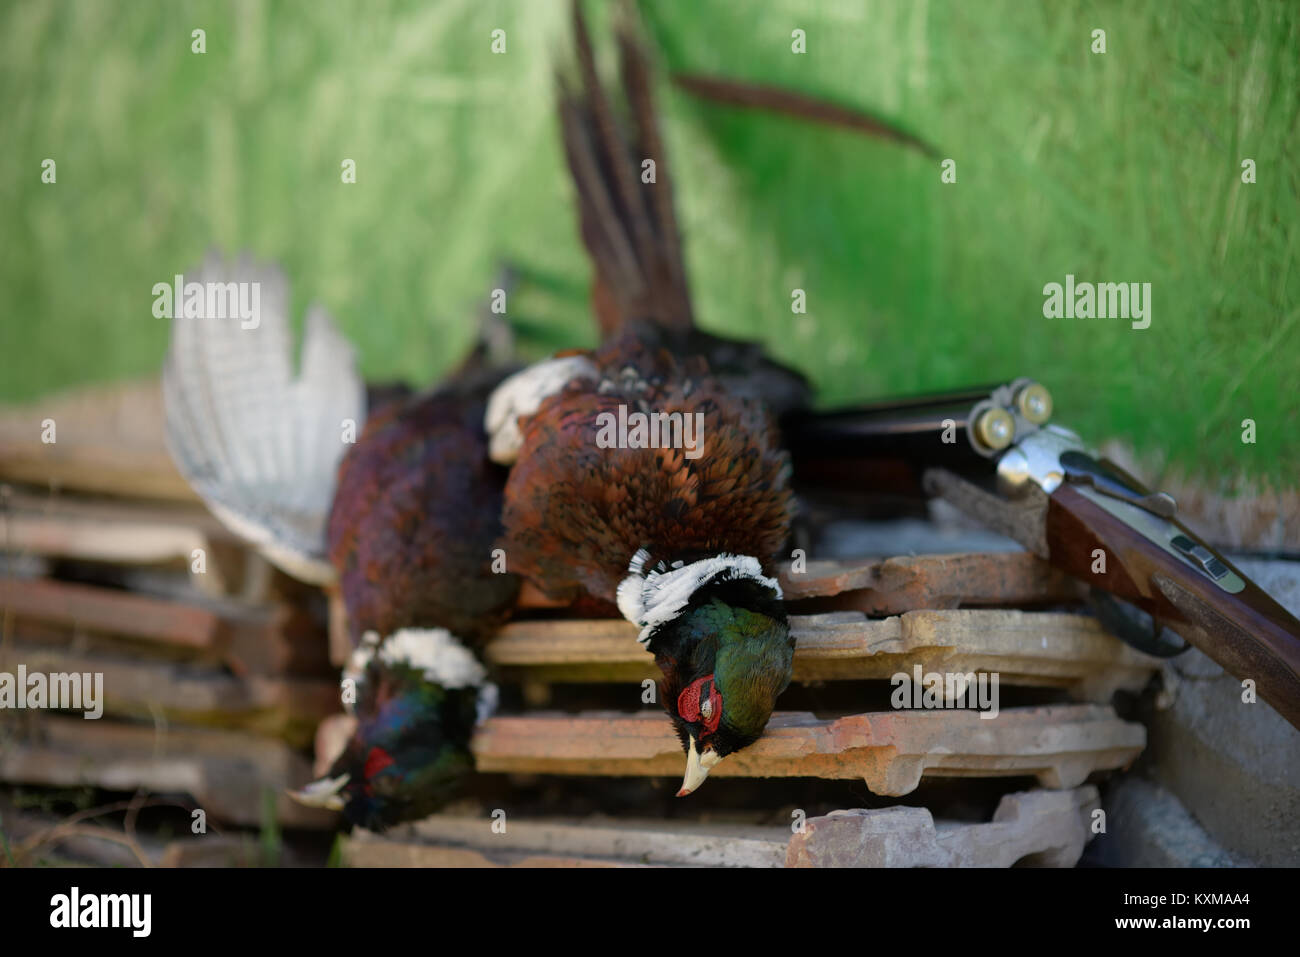 Hunting scene with a two pheasants and a shotgun. - Stock Image